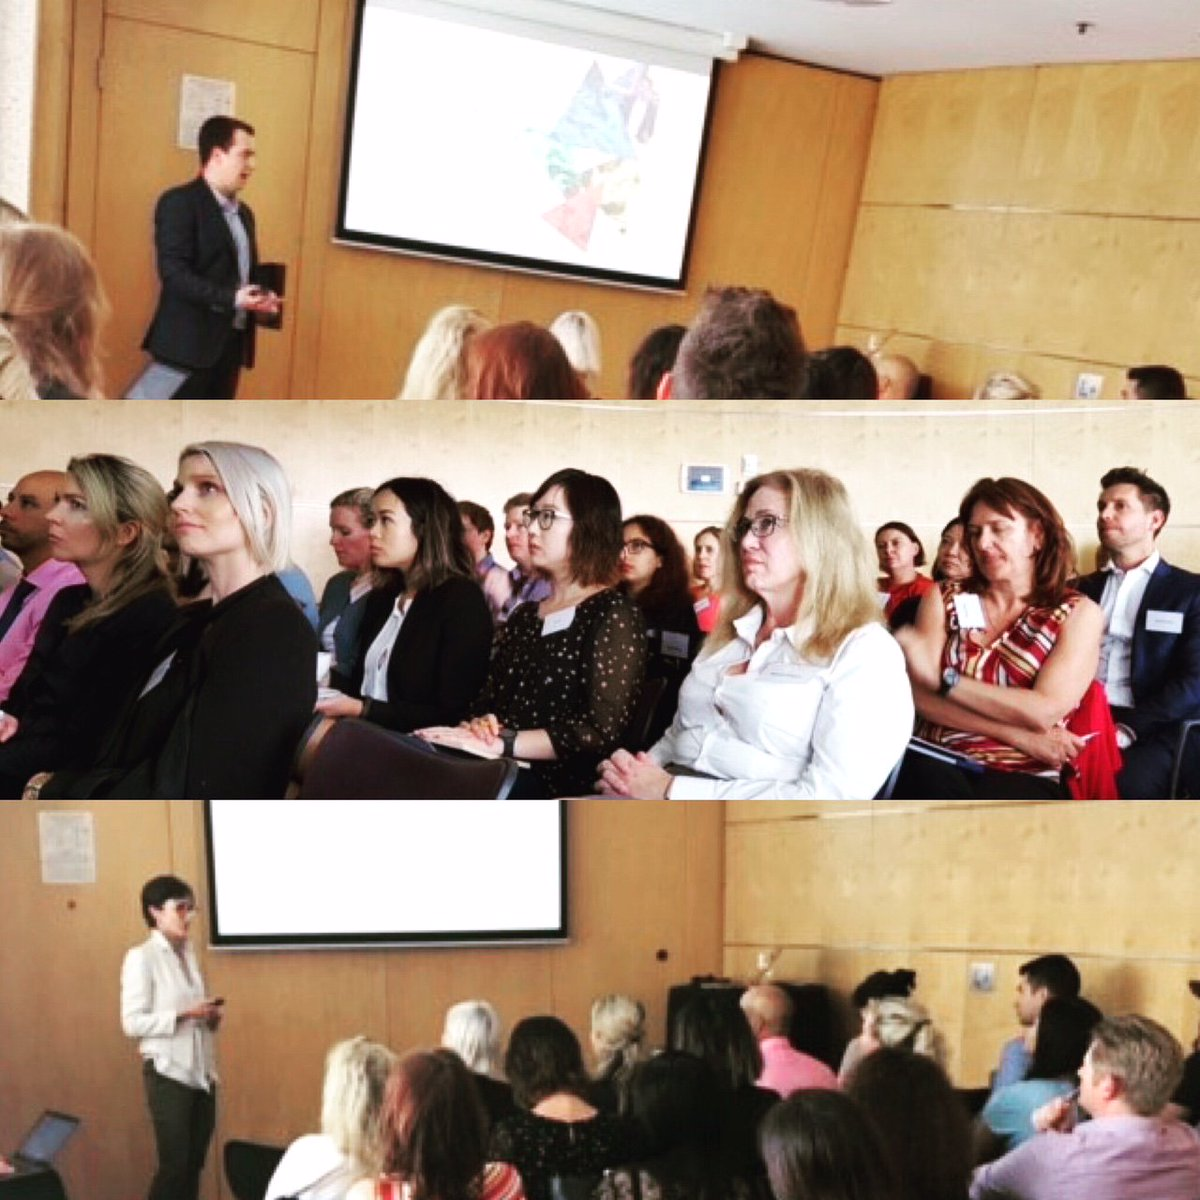 Full house at day 1 of our #InsightActivation Week in Sydney! Today&#39;s program? #MRX trends with @tomderuyck &amp; @erica_dfirst #newmr #marketresearch #downunder #insitesontour<br>http://pic.twitter.com/gDXrr5SfJX